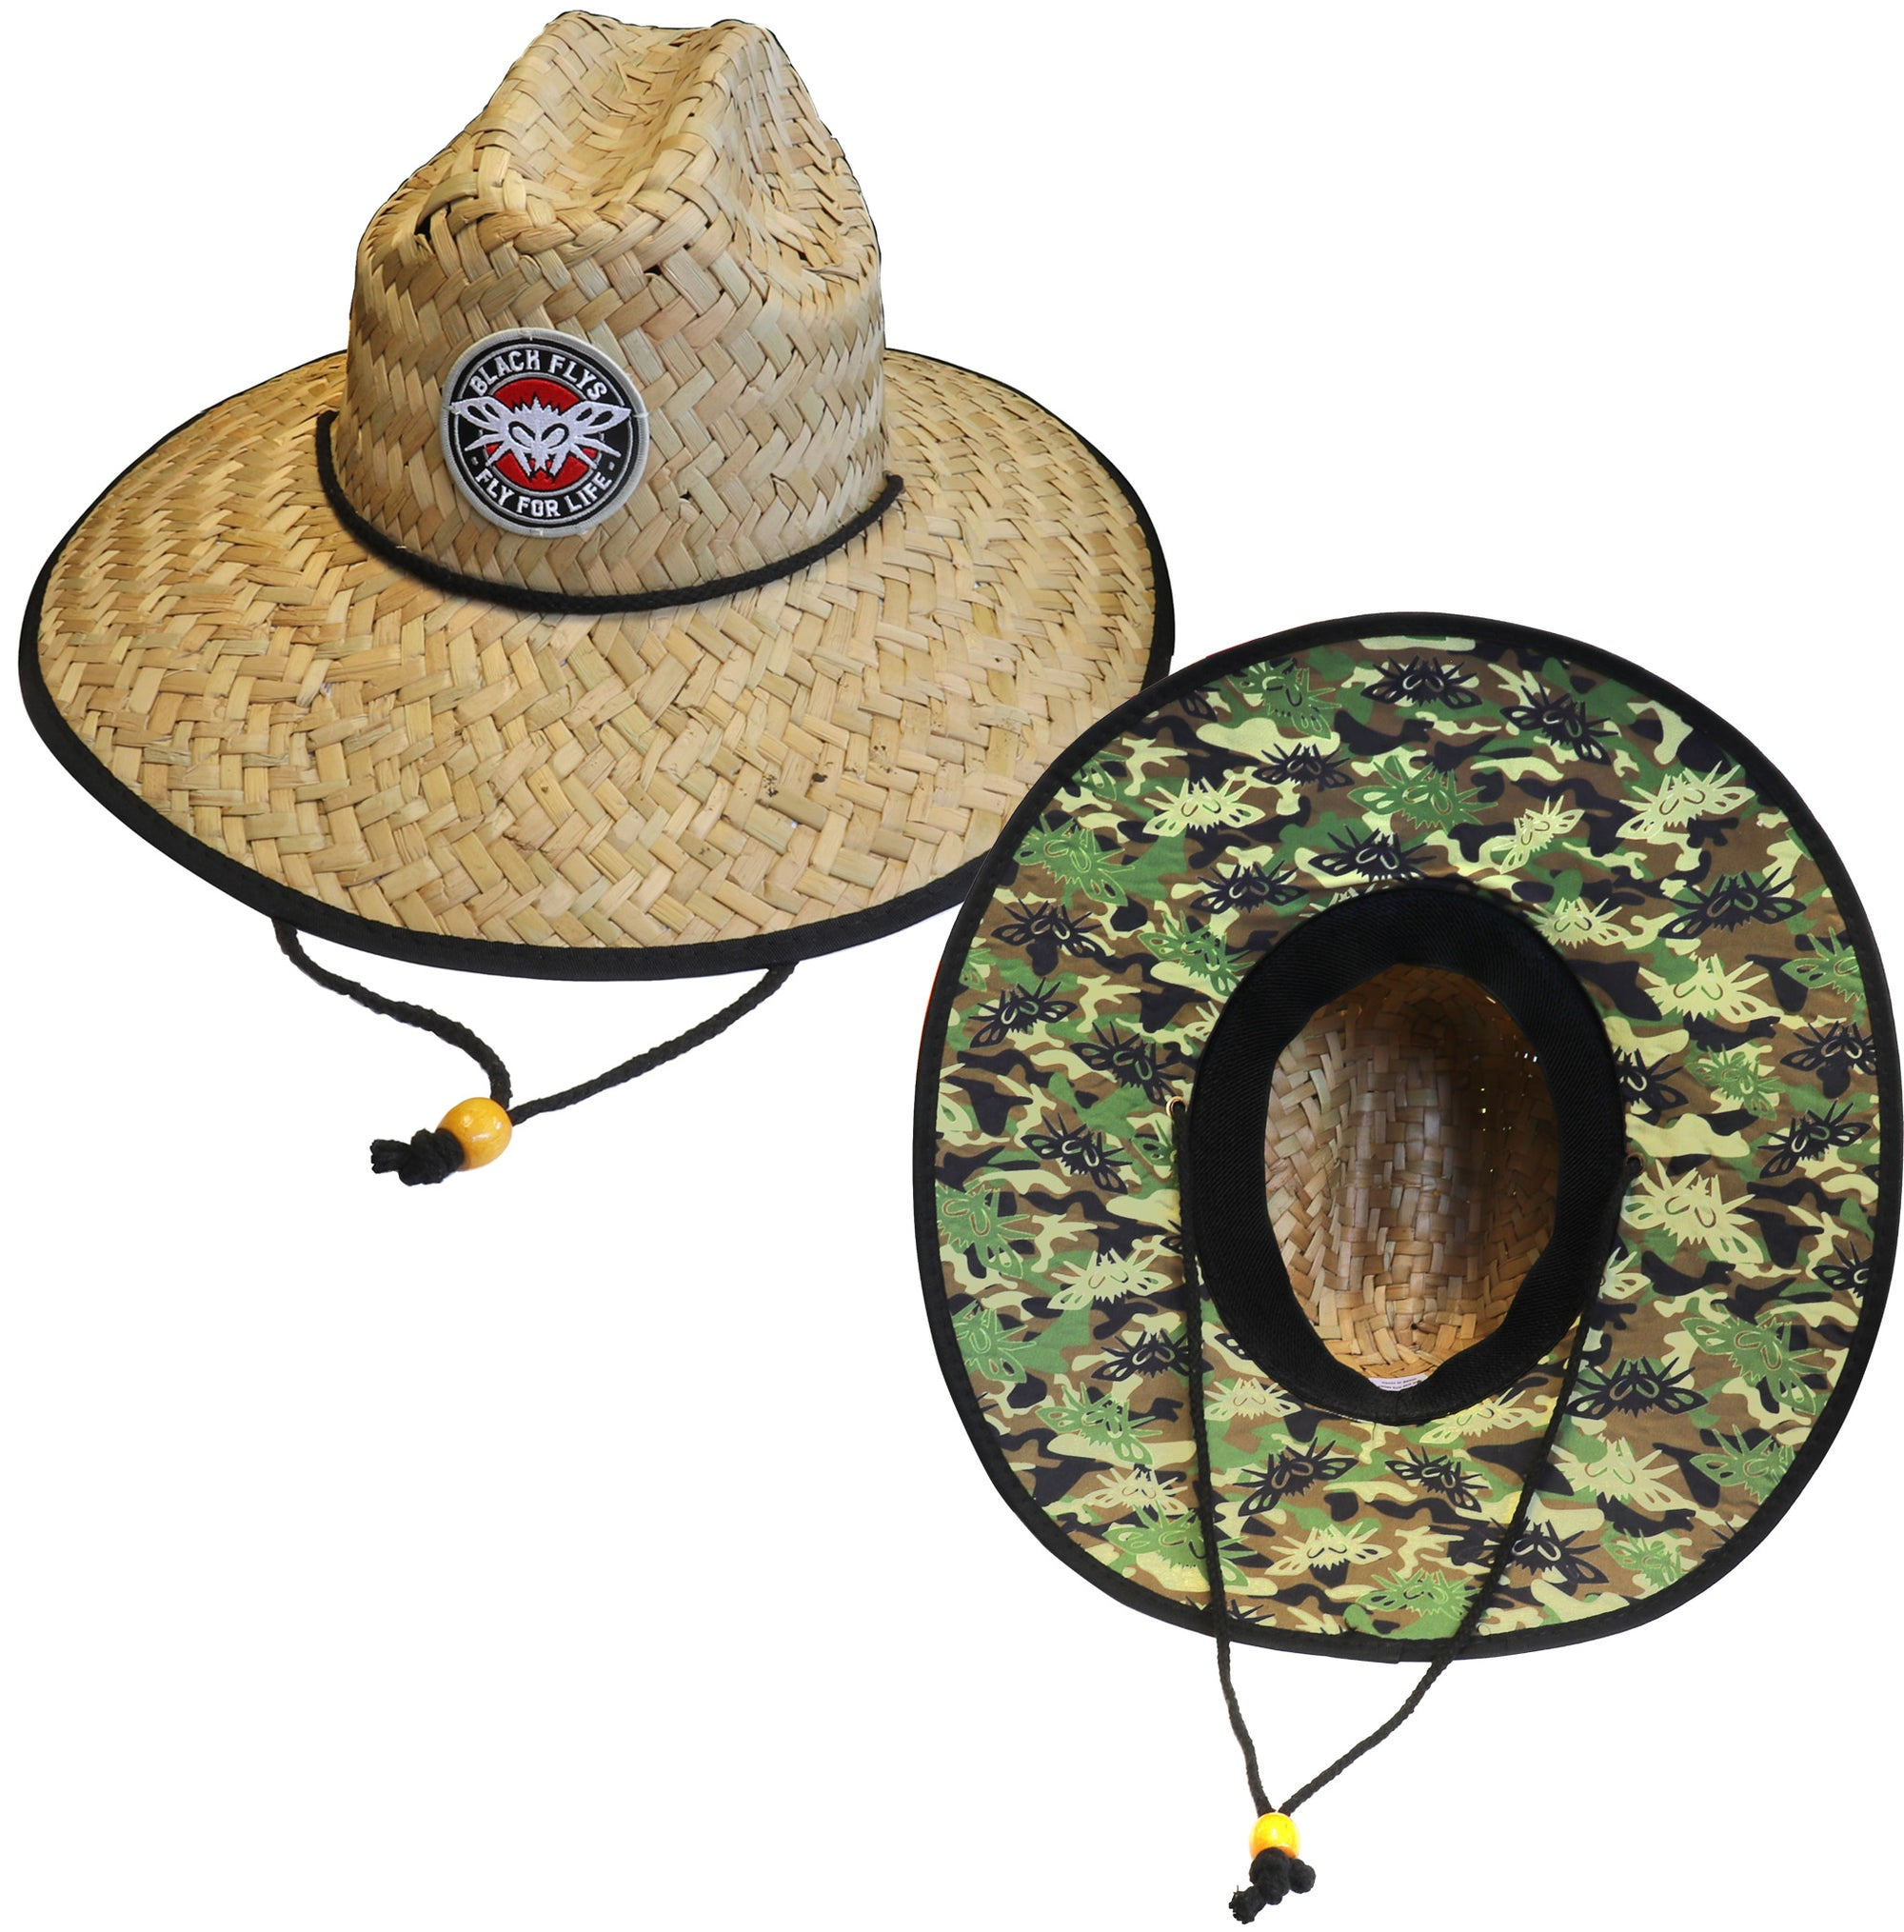 Fly 4 Life Straw Hat